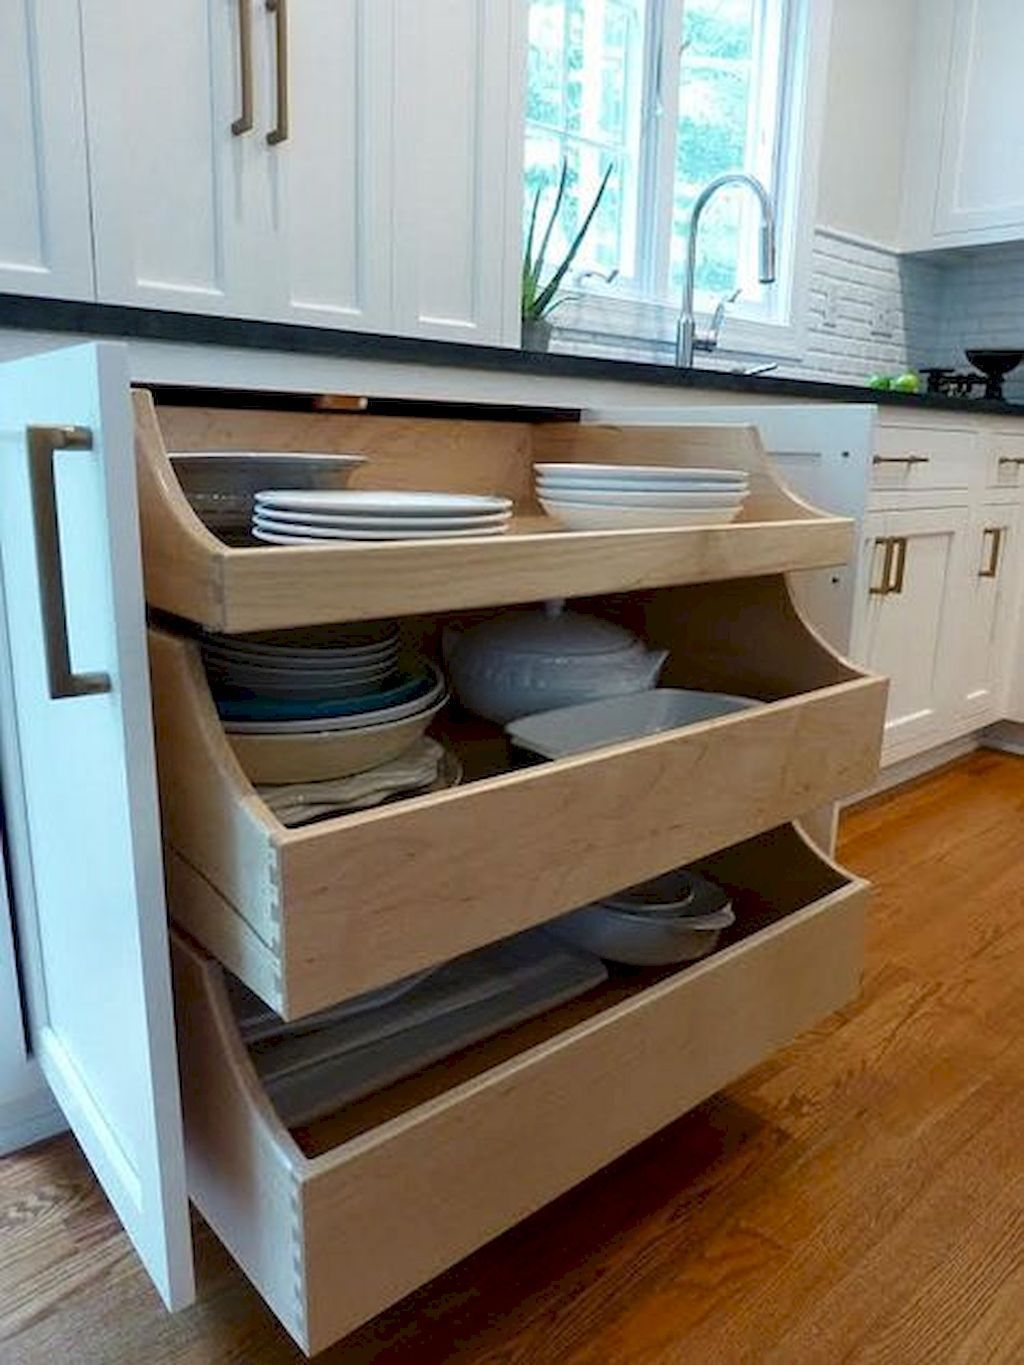 Creative kitchen storage solutions ideas (50 images